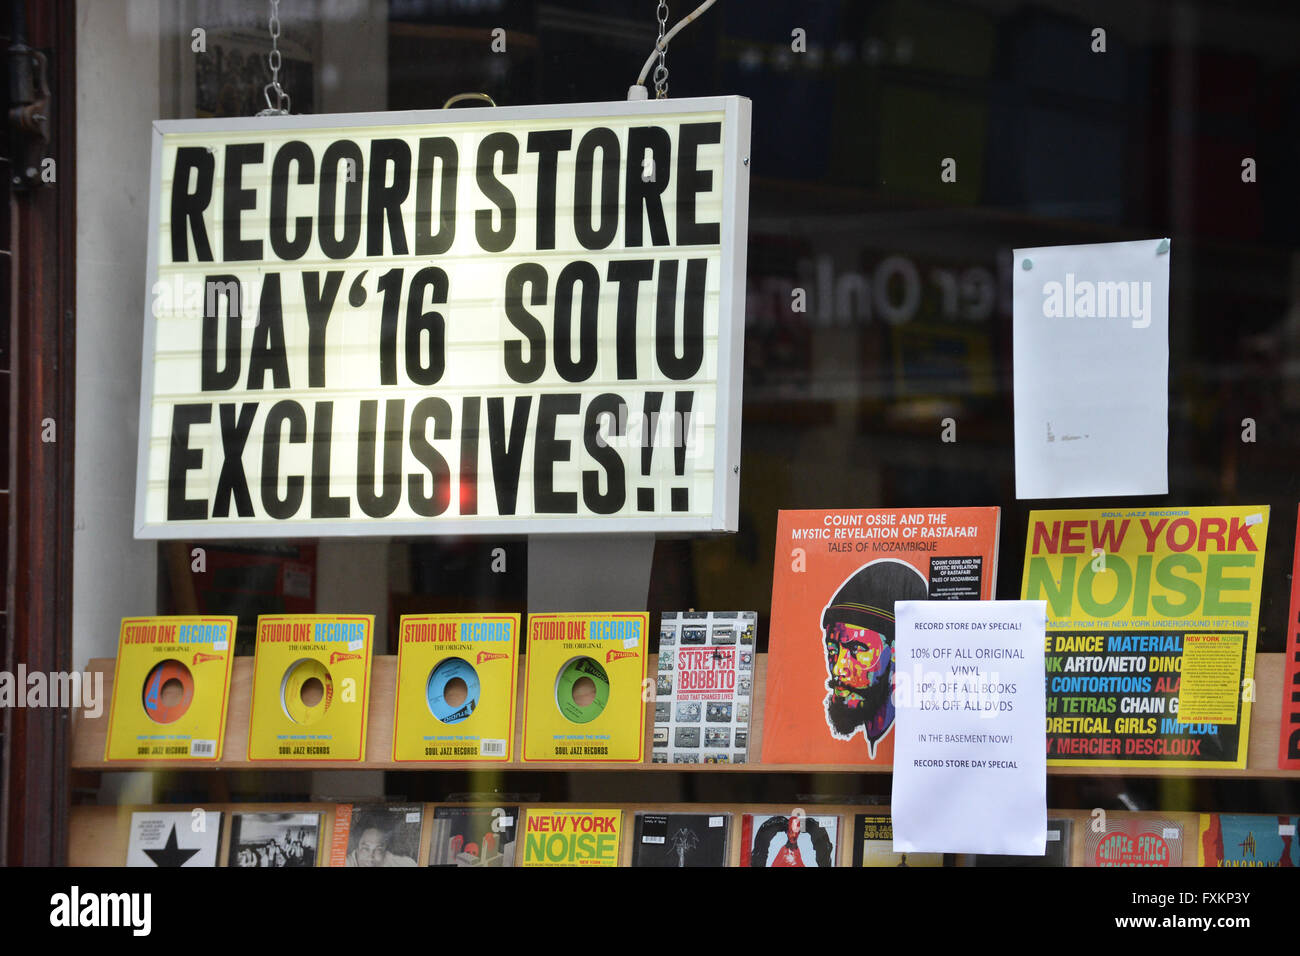 Soho, London, UK. 16th April 2016. The annual Record Store Day, record collectors queue for special releases, cds - Stock Image